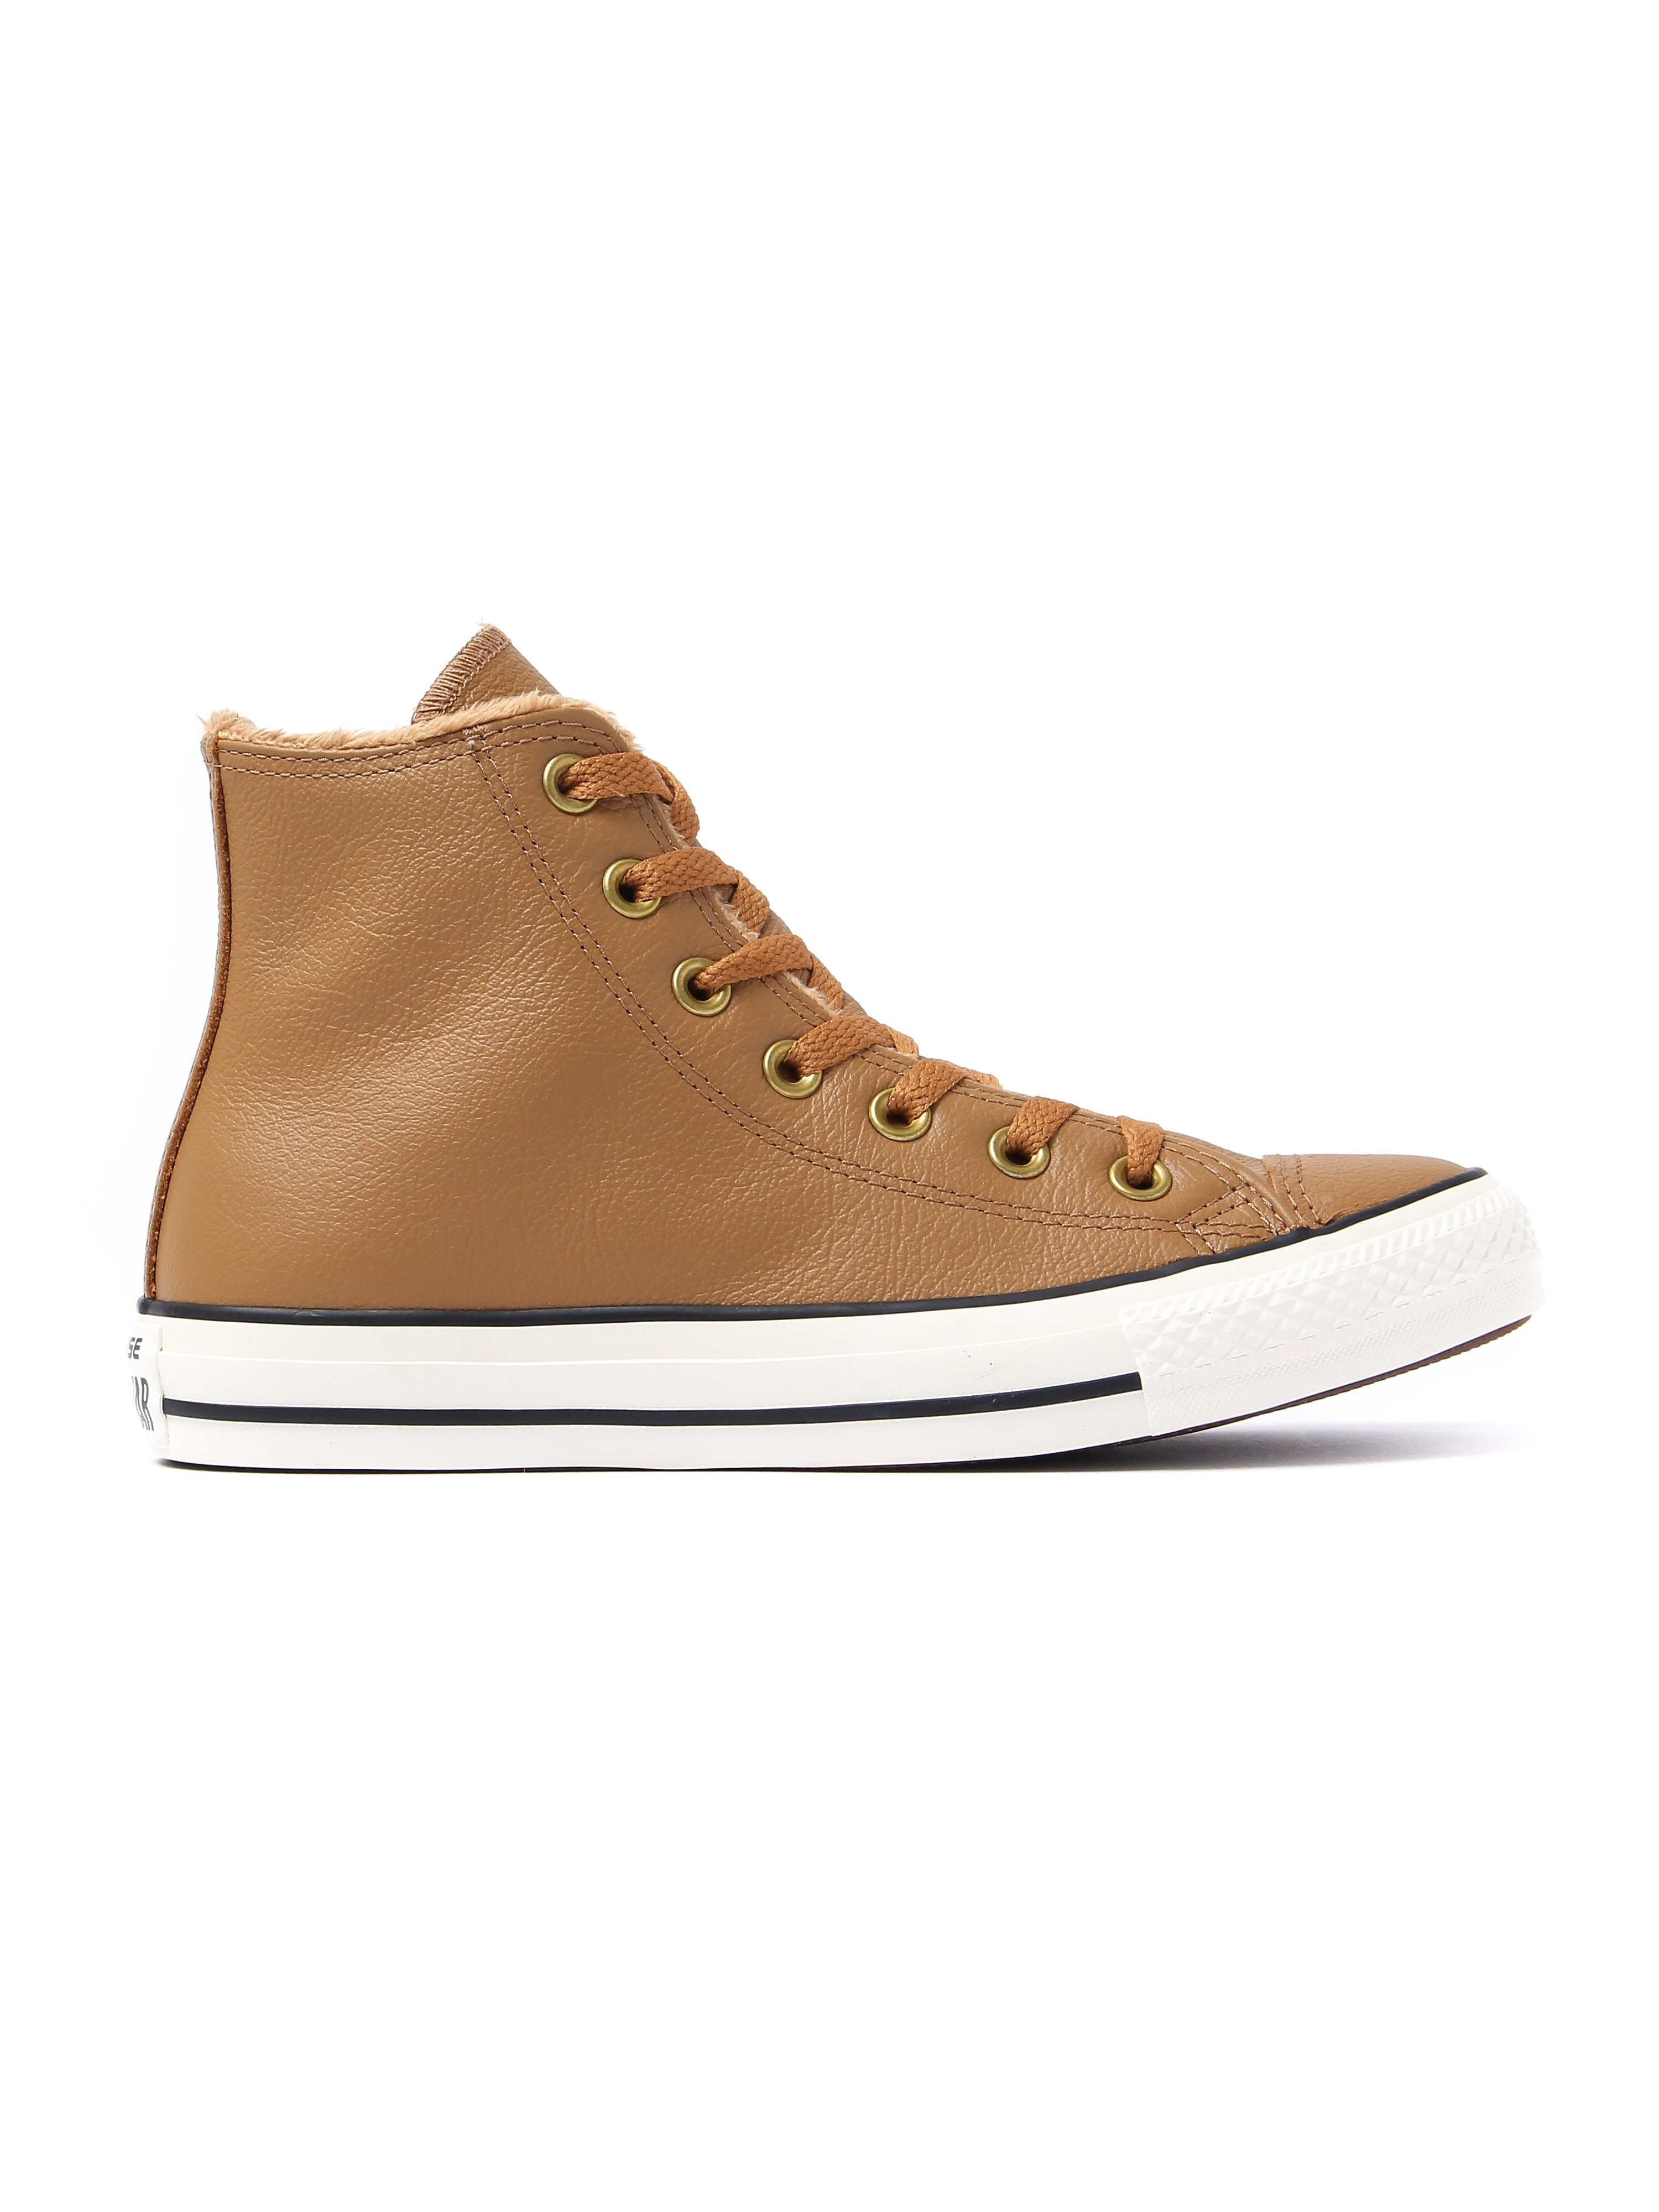 Converse Women's Chuck Taylor All Star HI Trainers - Chipmunk Leather